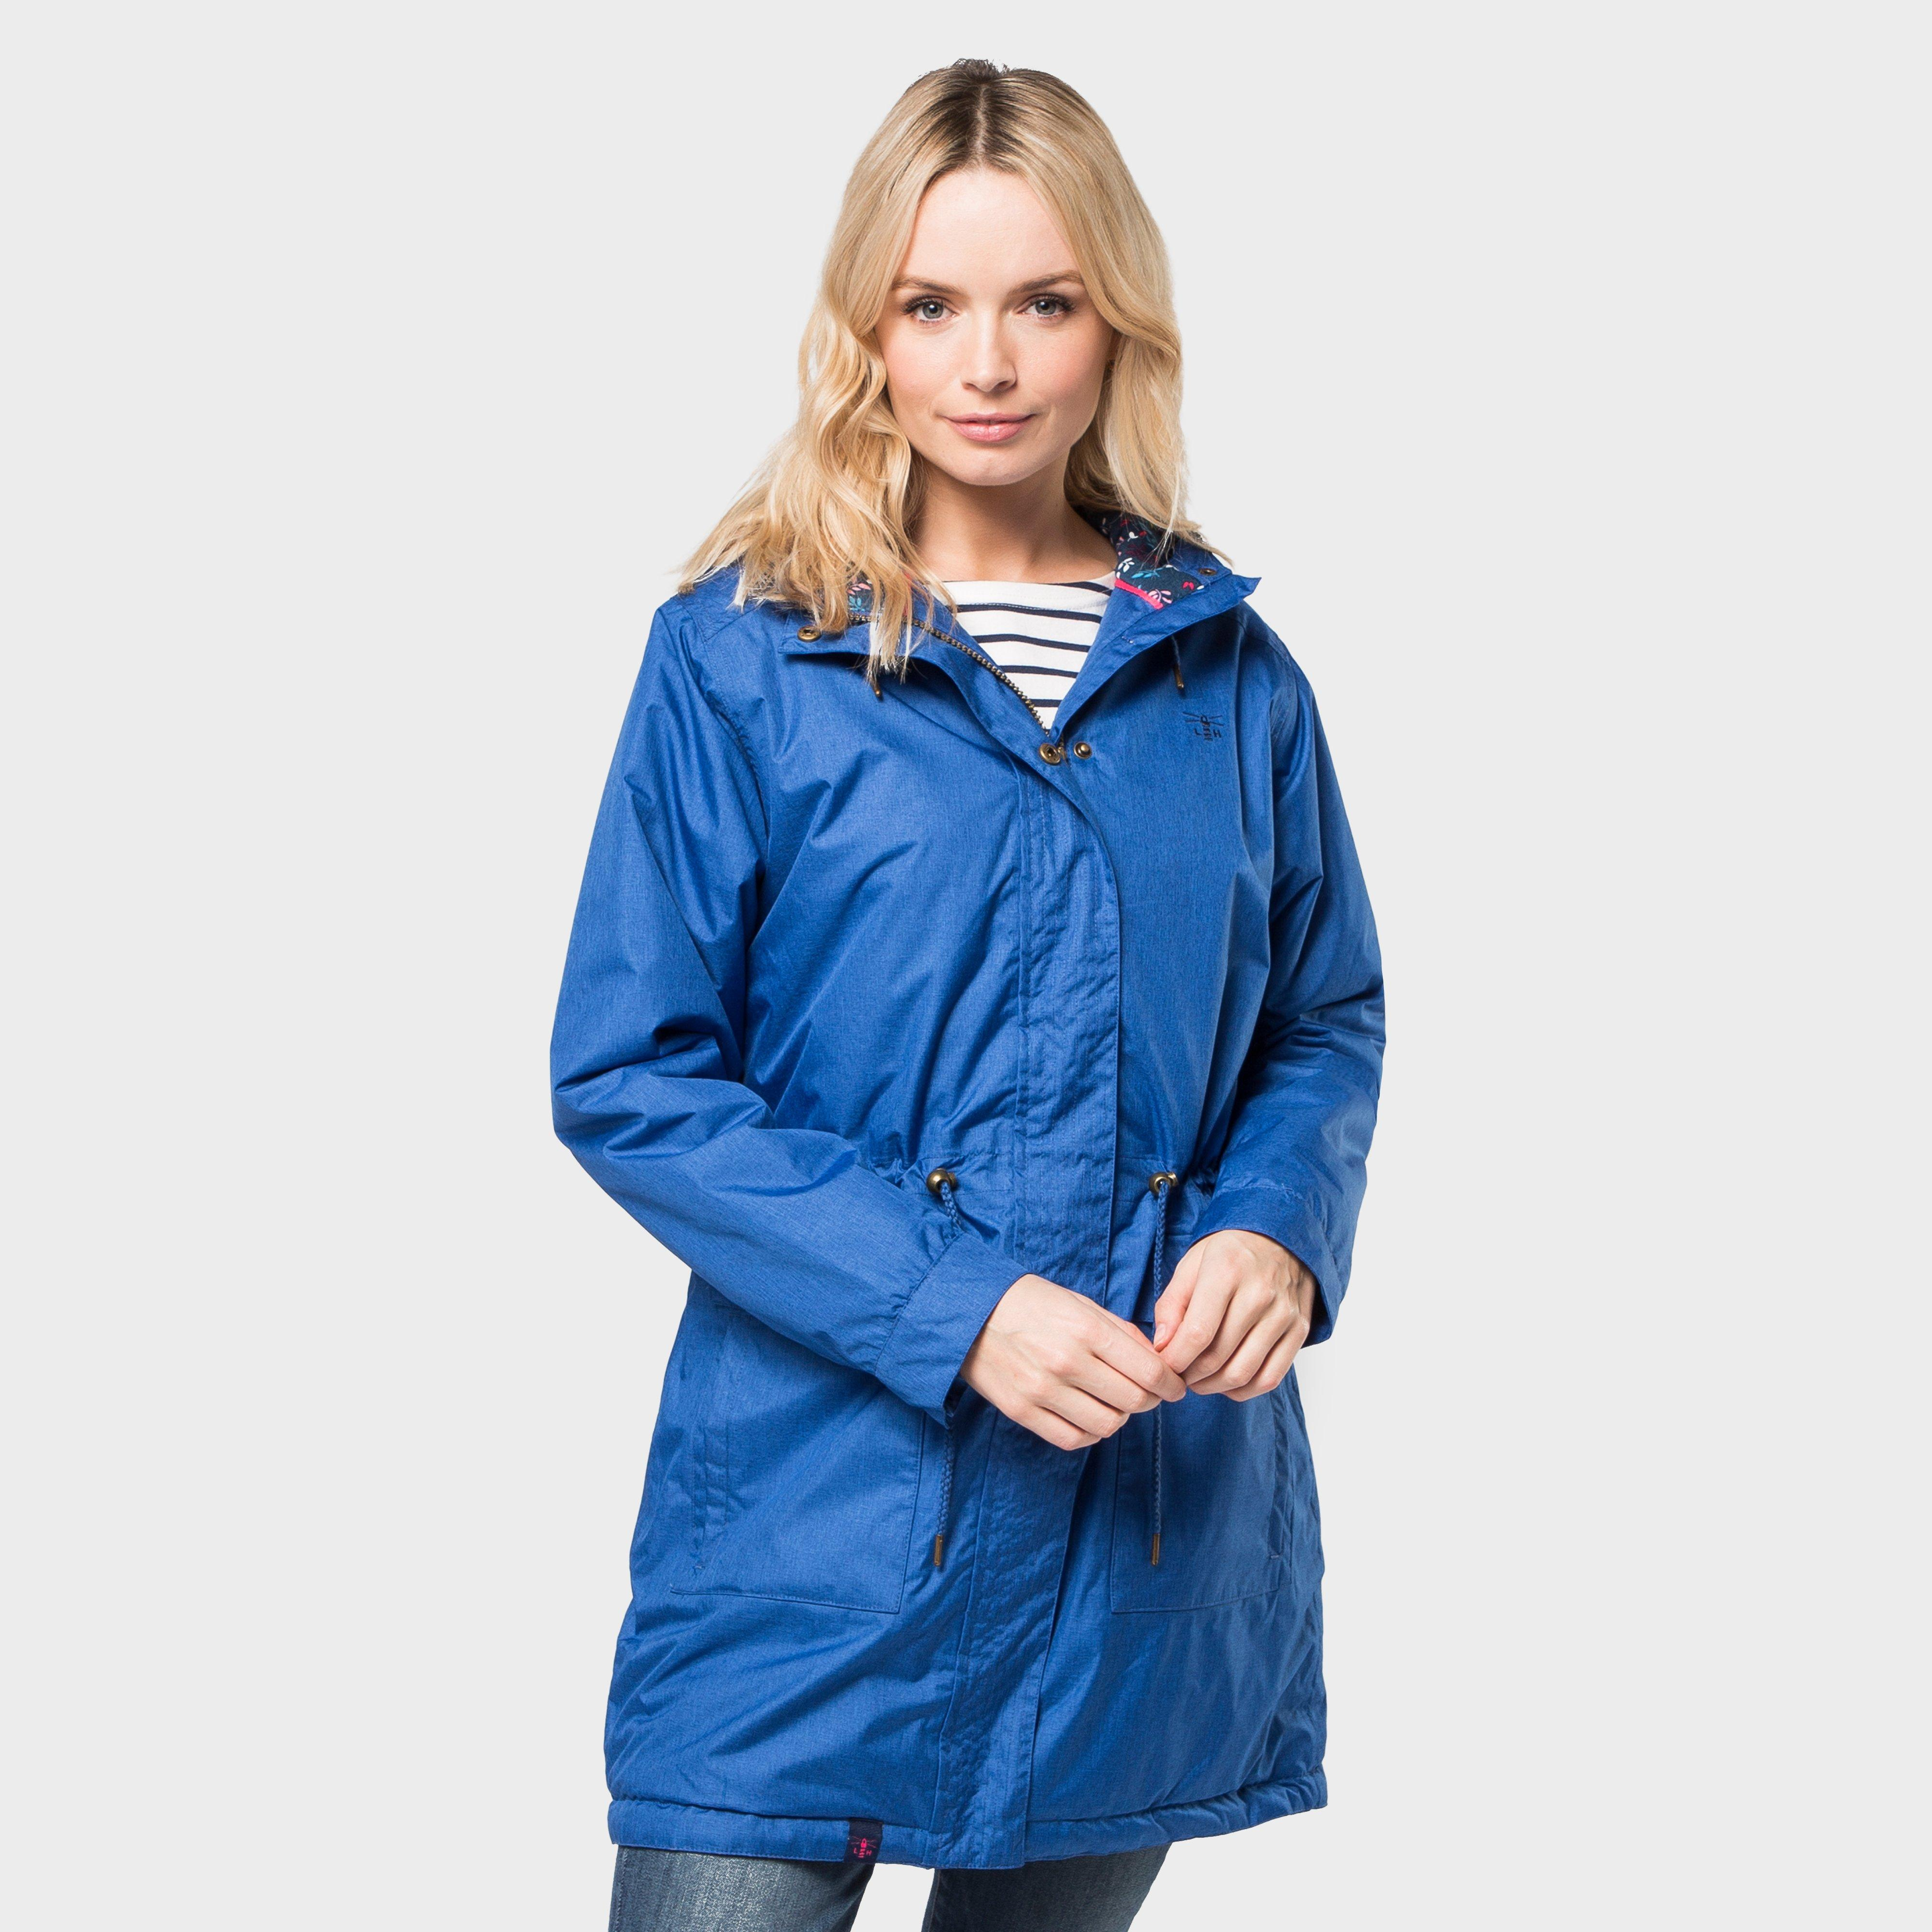 Lighthouse Women's Lauren Waterproof Jacket, Blue